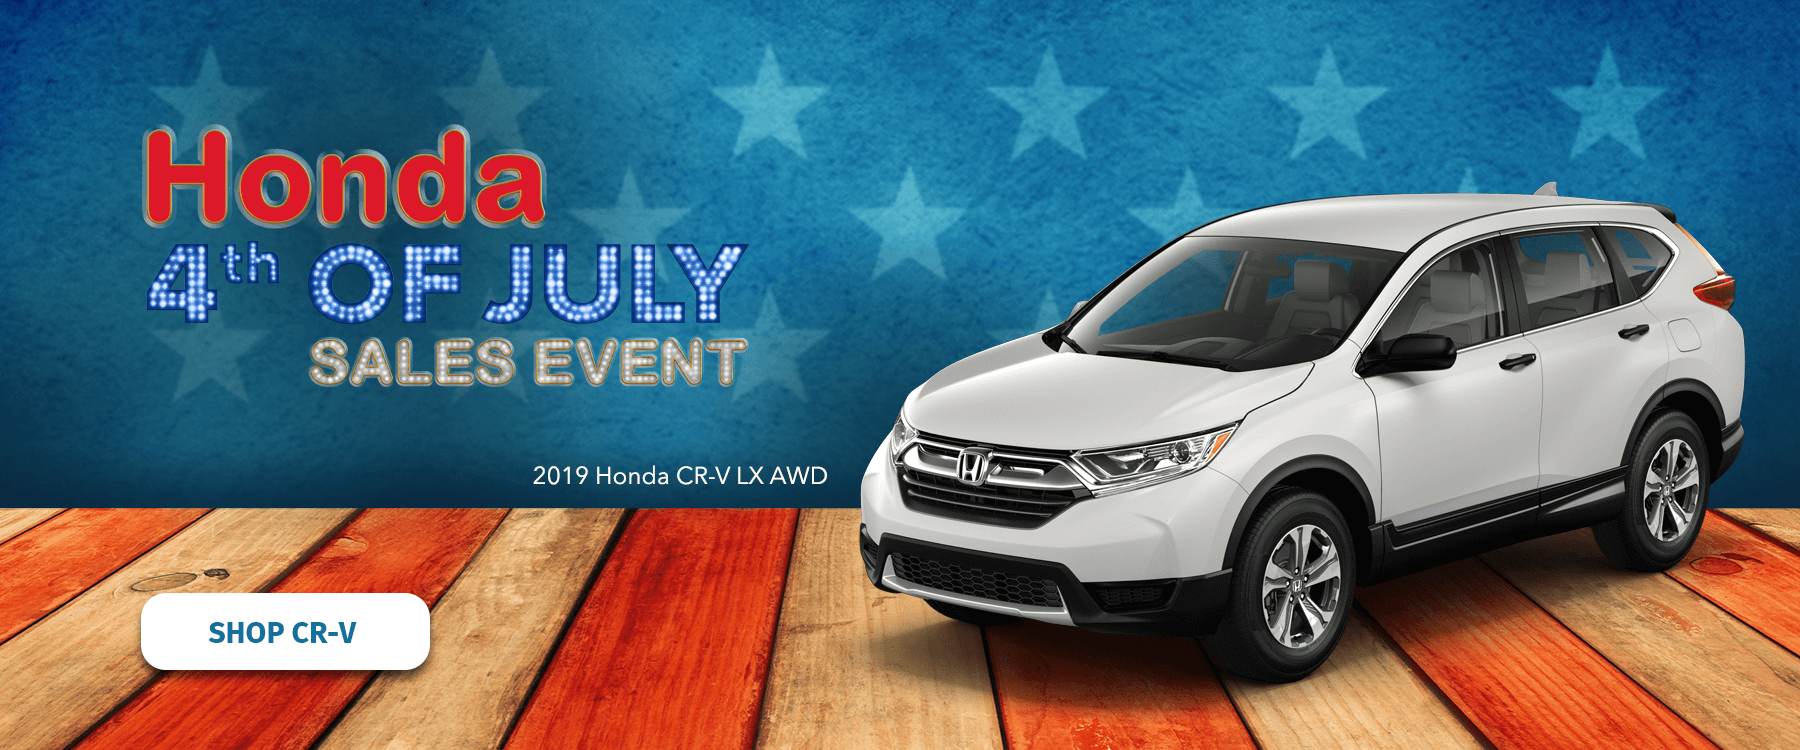 Honda 4th of July Sales Event 2019 CR-V Slider